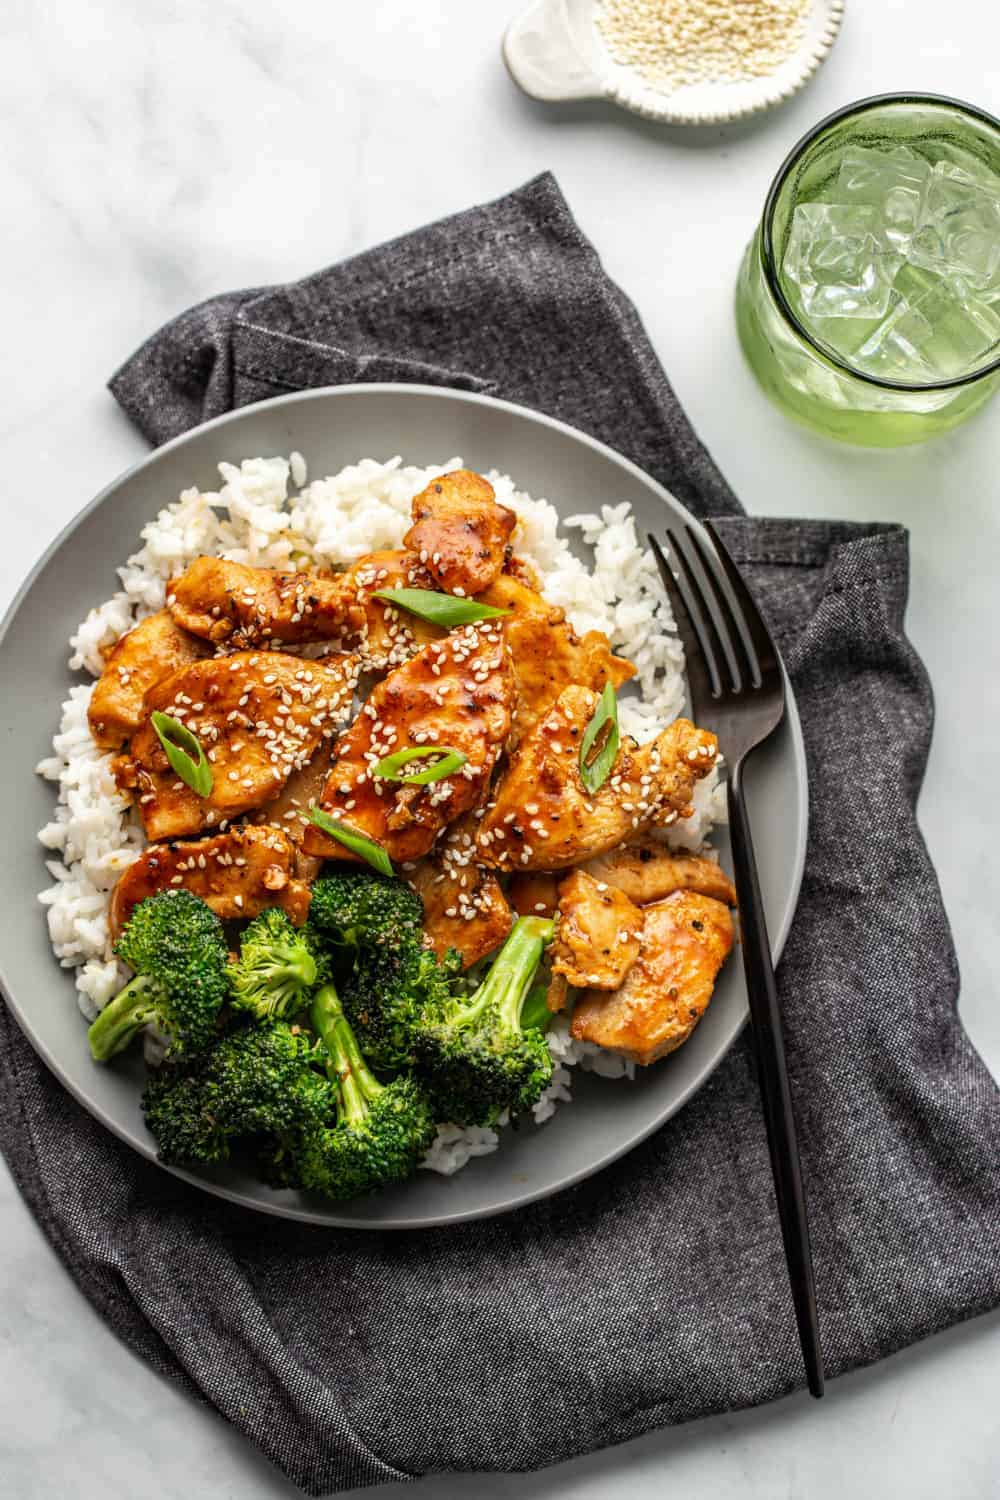 Overhead view of honey soy chicken and broccoli plated with rice